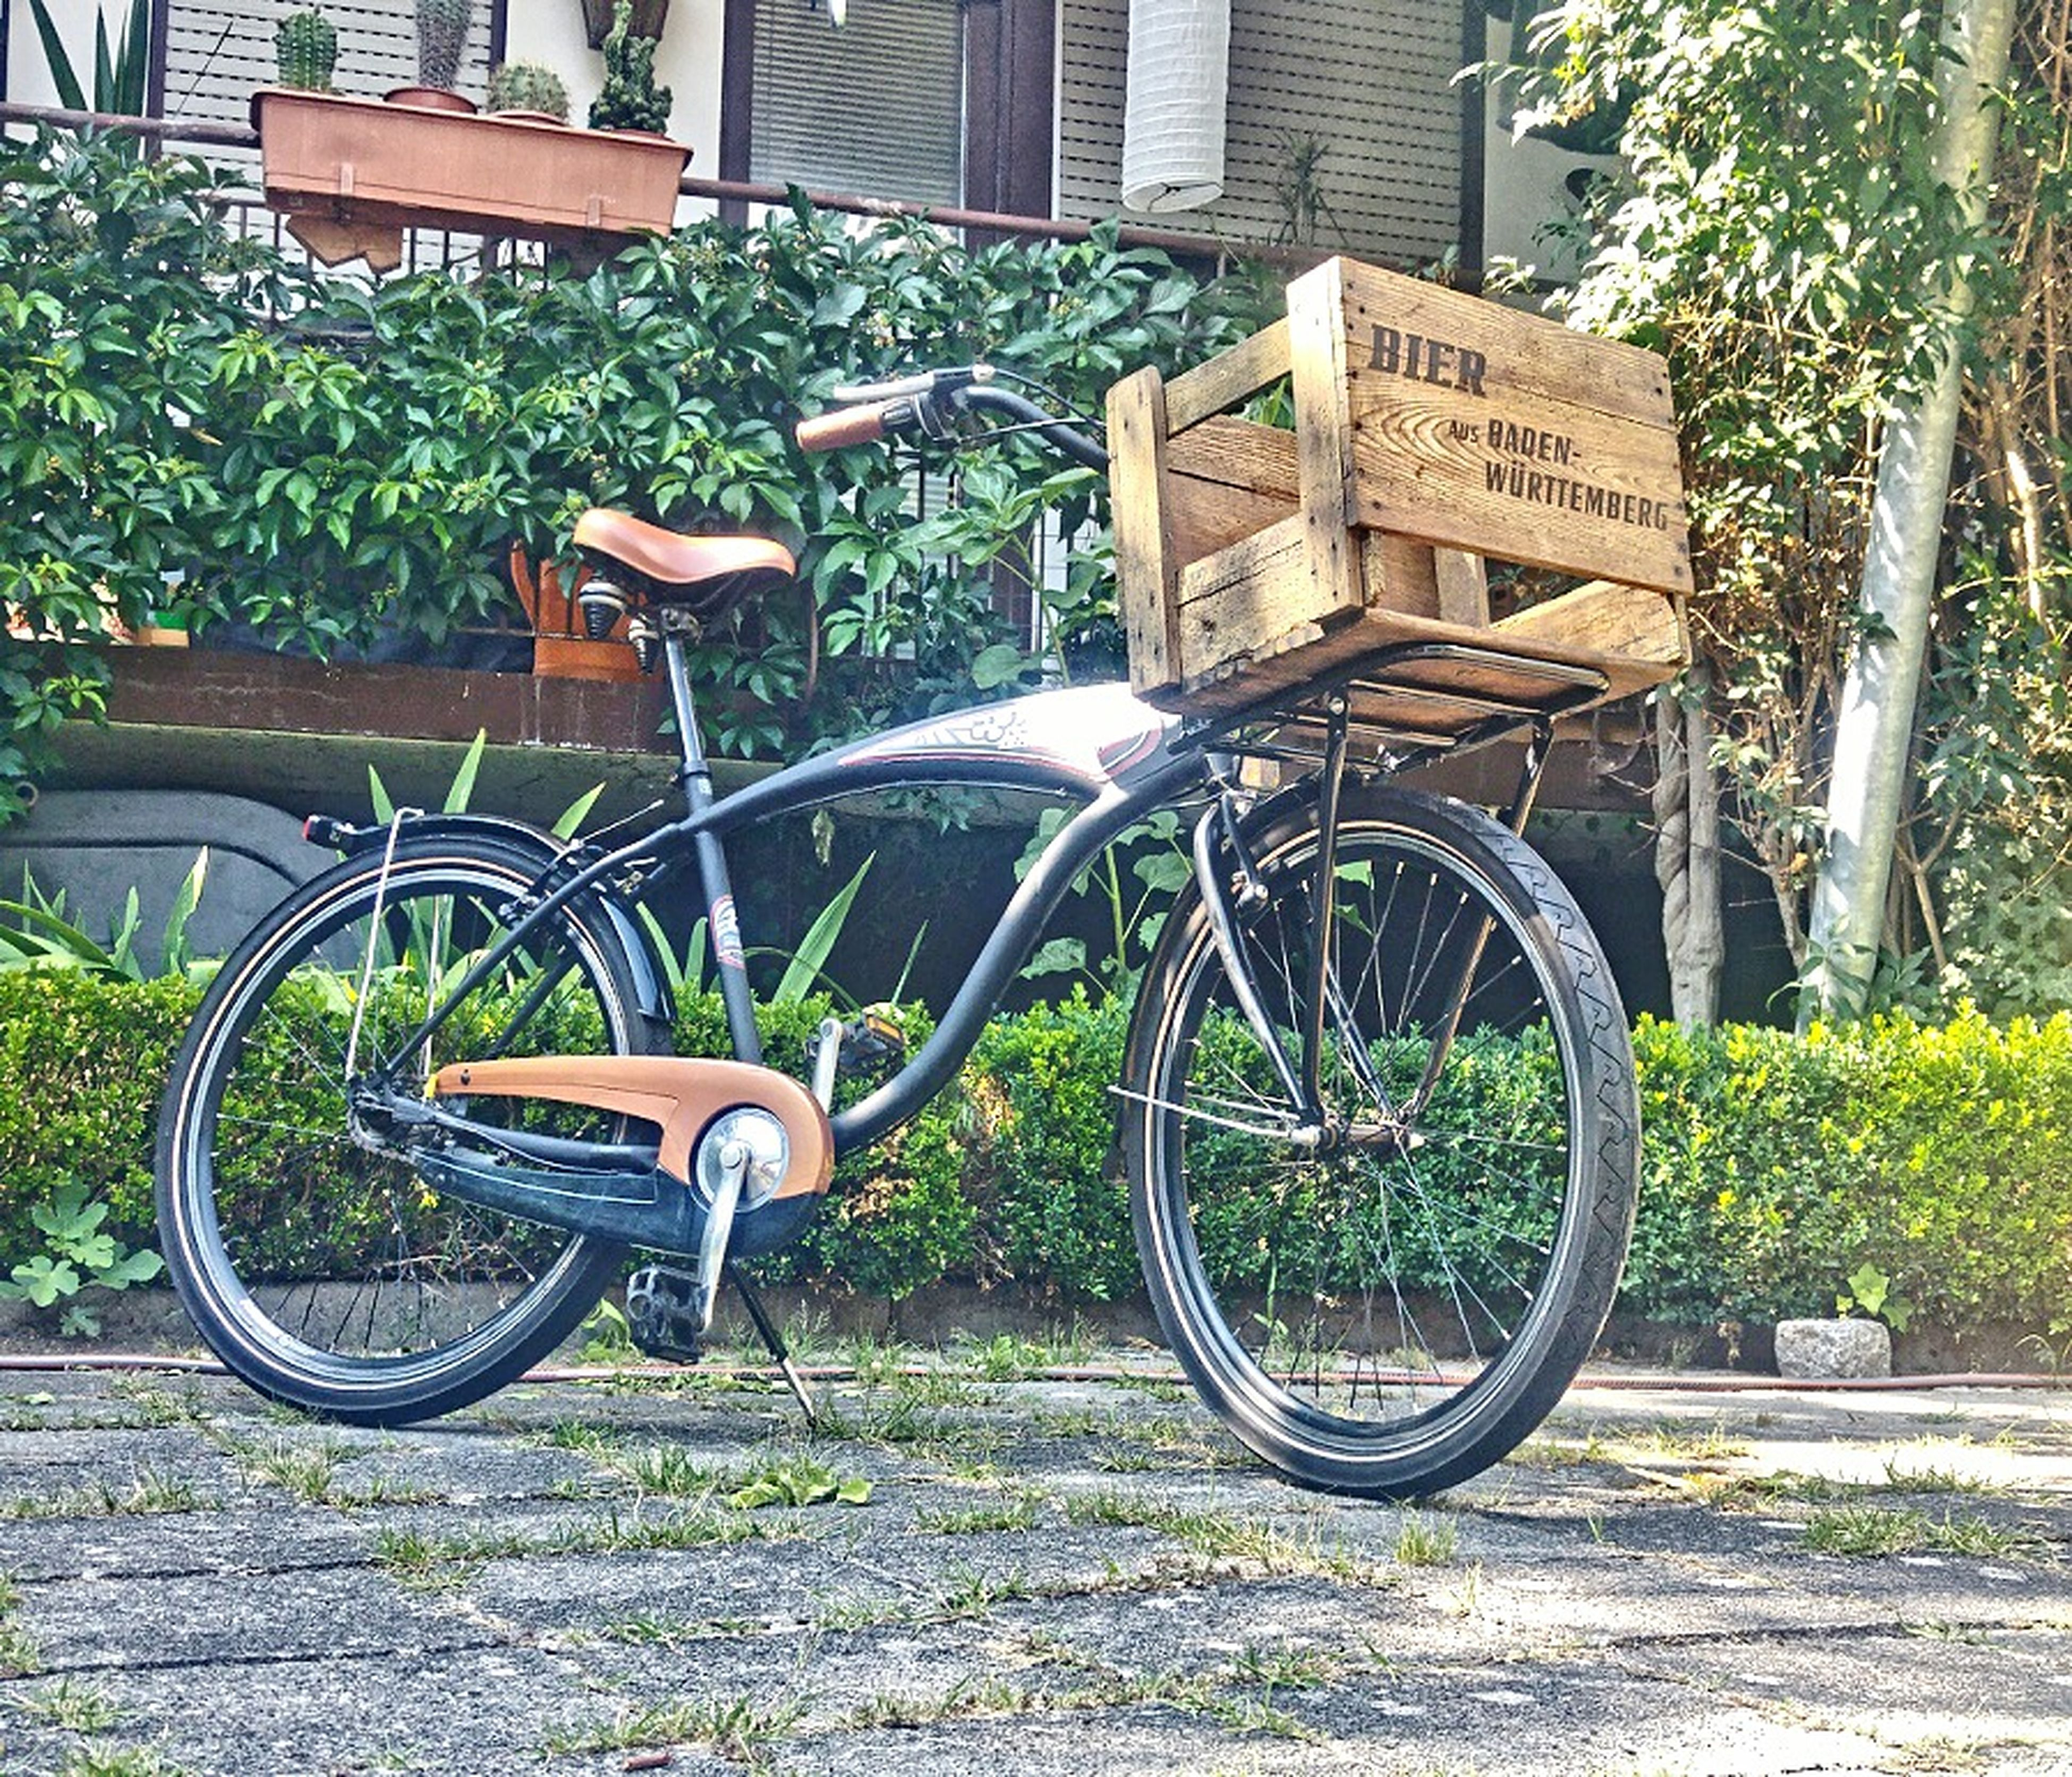 bicycle, transportation, mode of transport, outdoors, land vehicle, day, stationary, building exterior, architecture, built structure, no people, plant, bicycle rack, tree